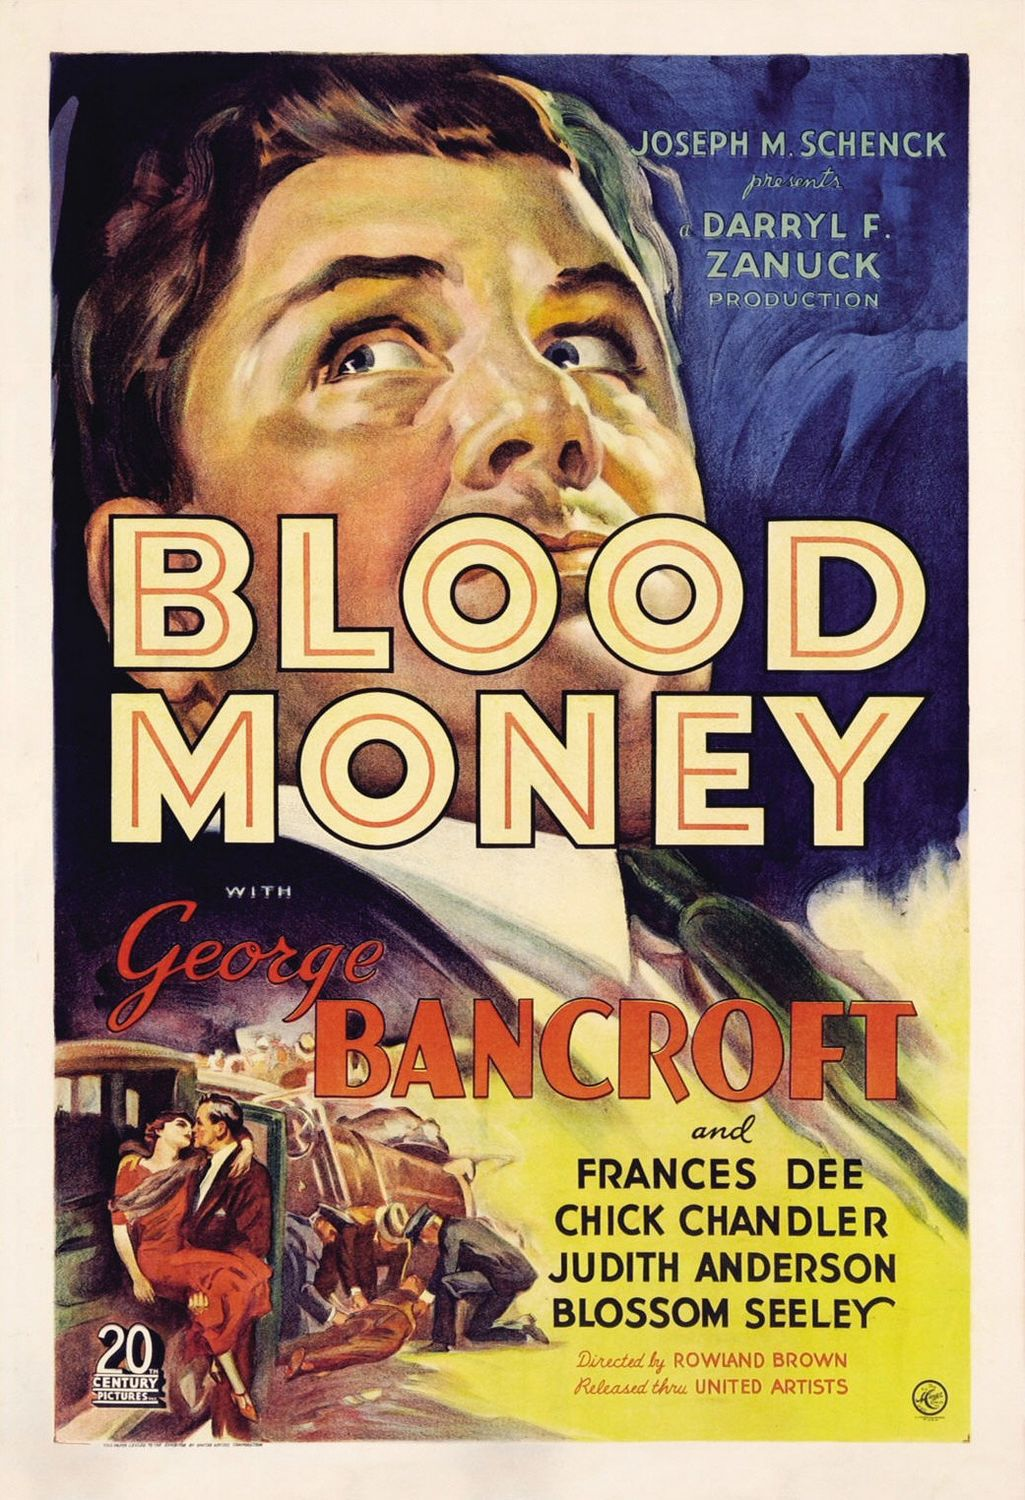 Blood Money (1933) - Cast: George Bancroft, Judith Anderson, Frances Dee, Chick Chandler - classic cult film poster 30s